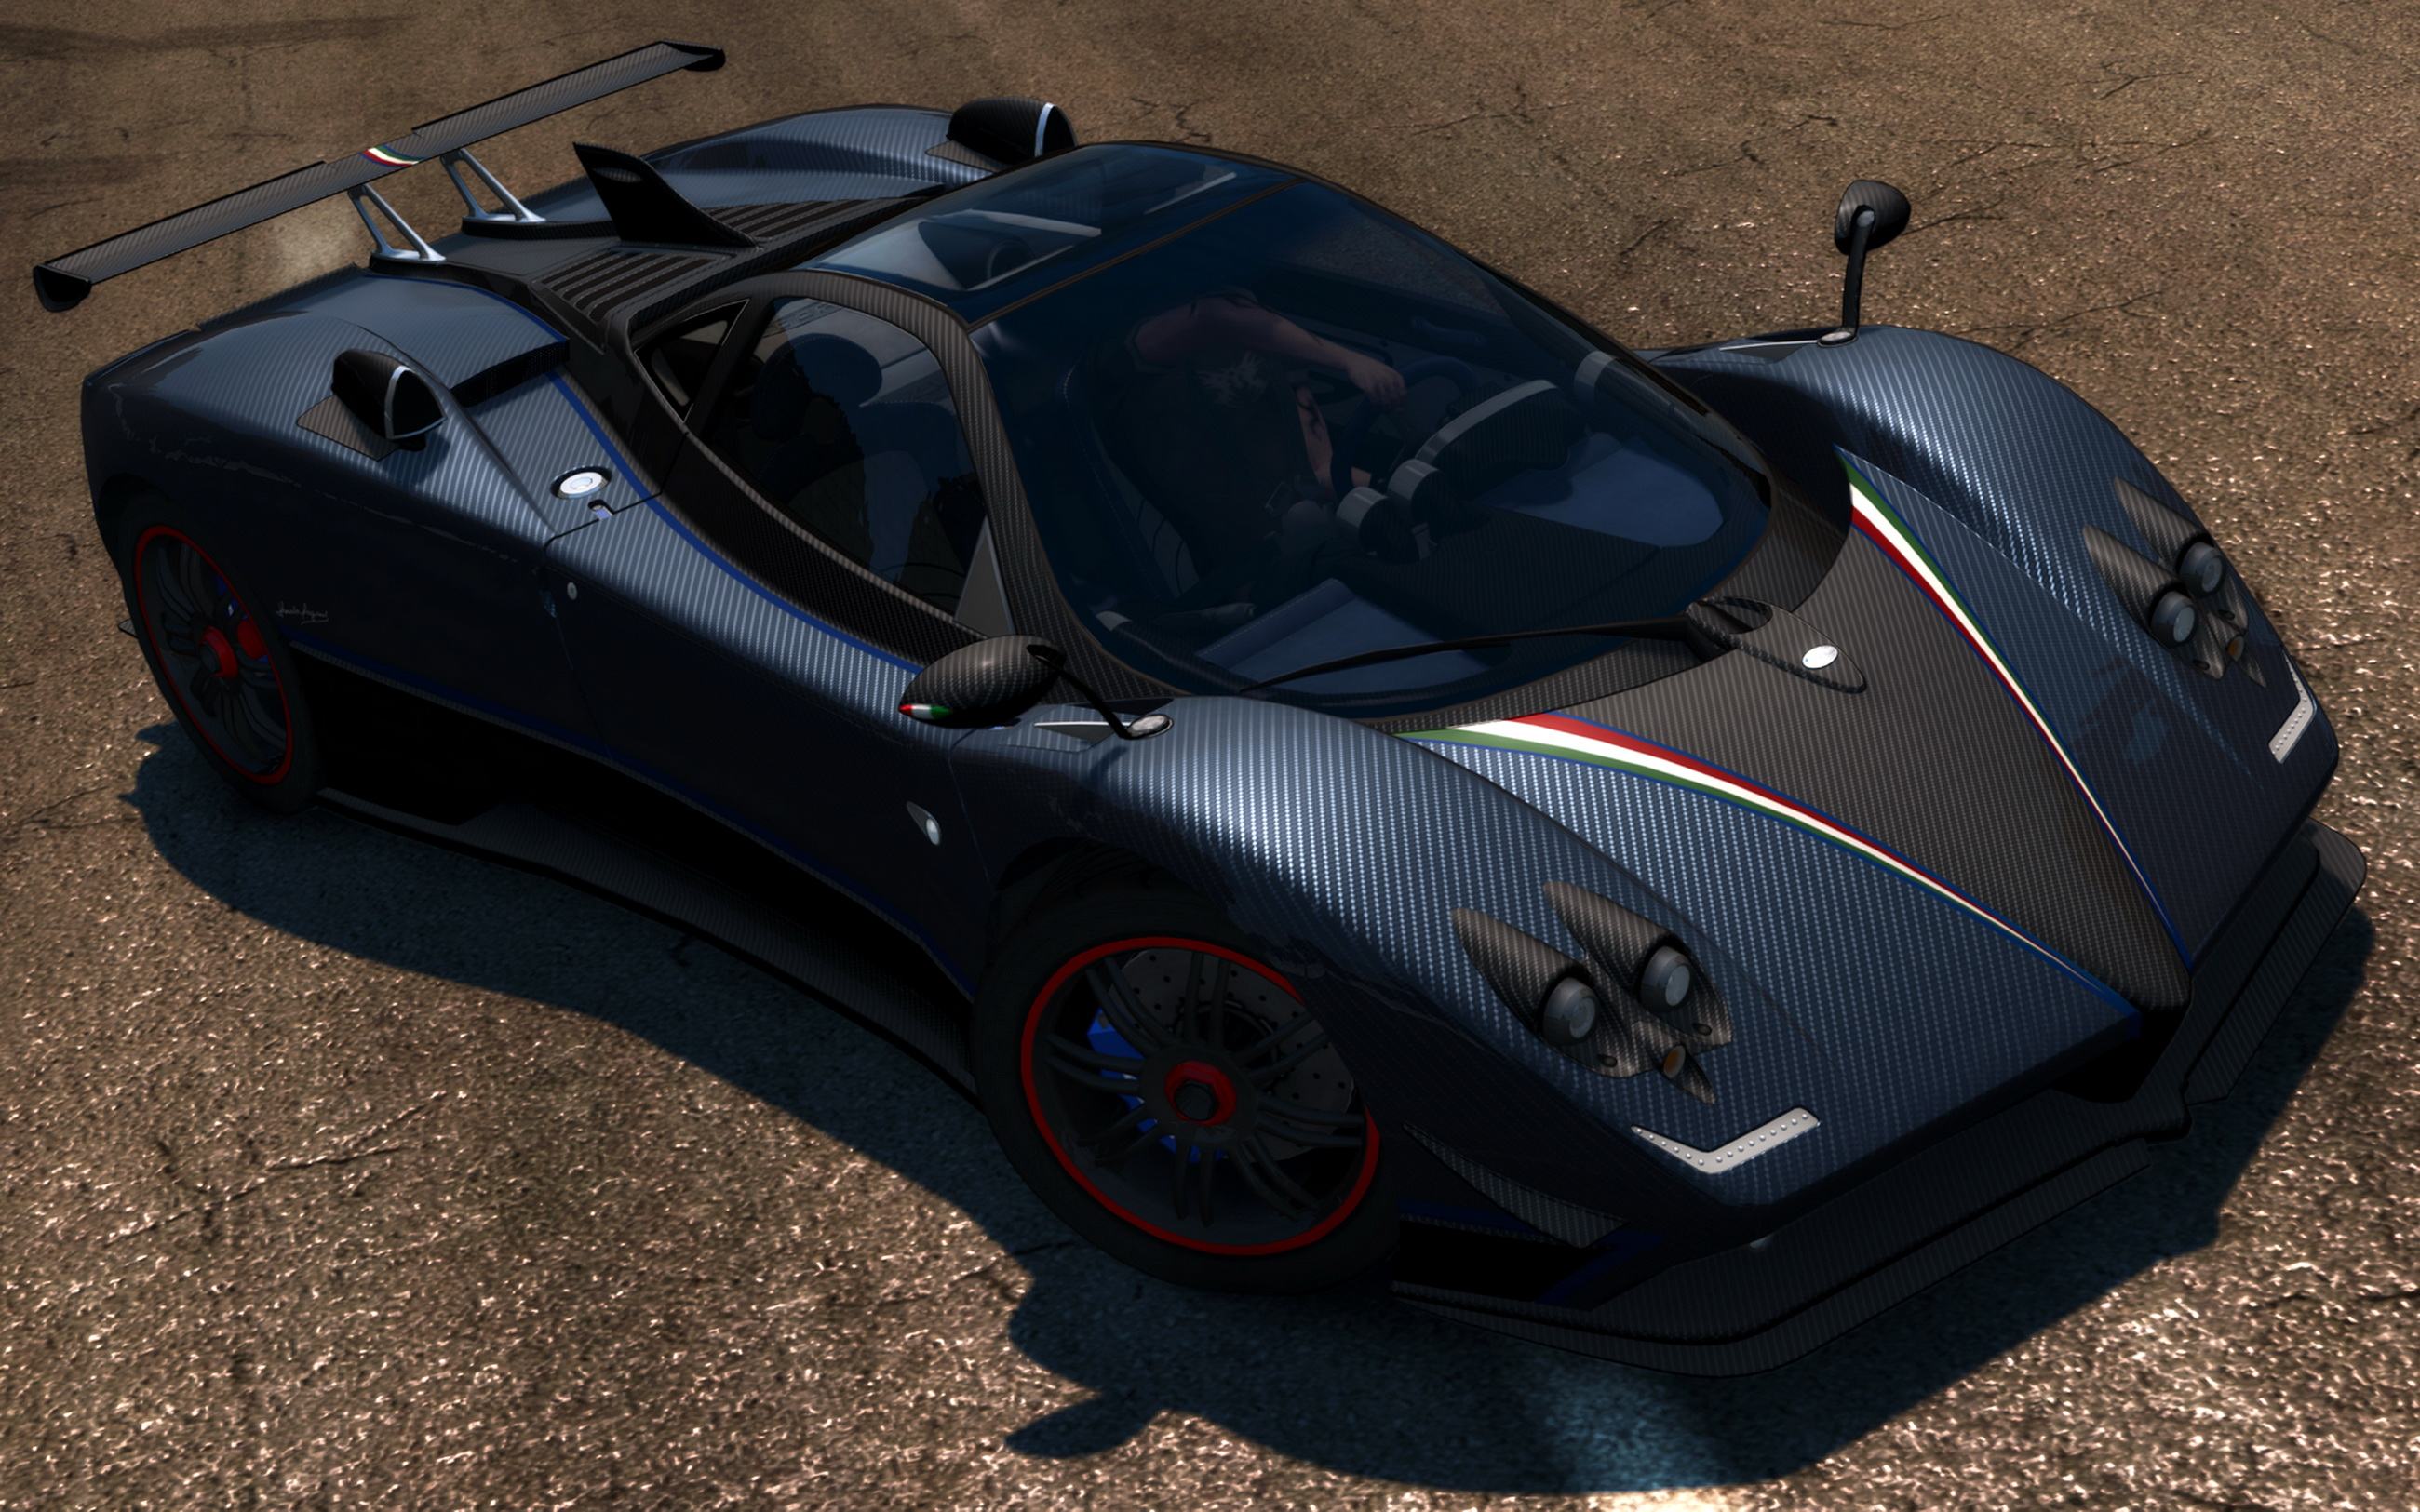 Pagani Vehicles Cars Supercar Exotic Racing Race Stance Wallpaper